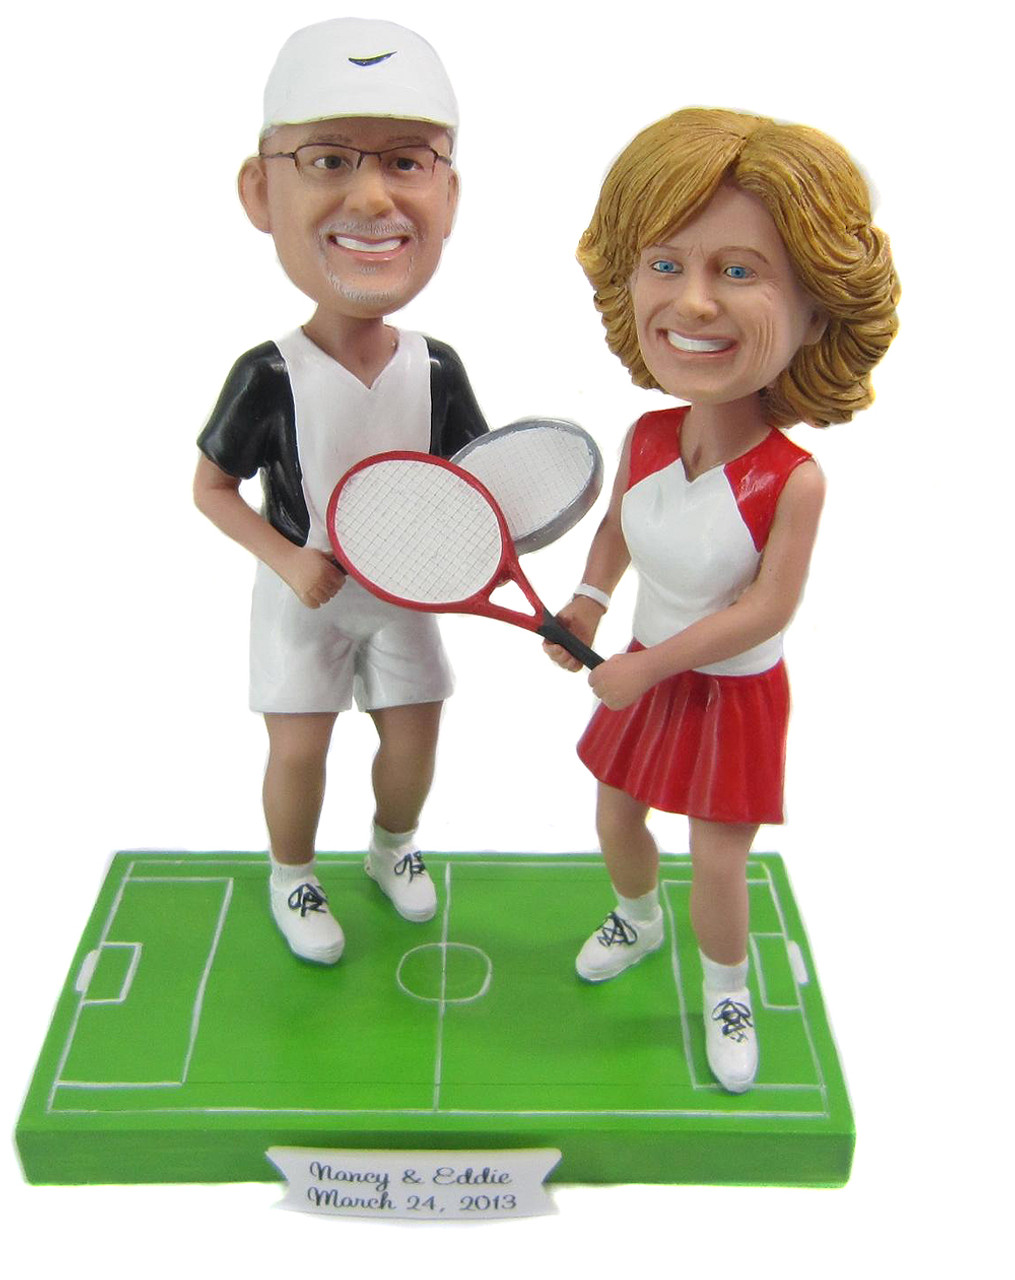 Tennis Wedding Cake Toppers - Custom, Personalized